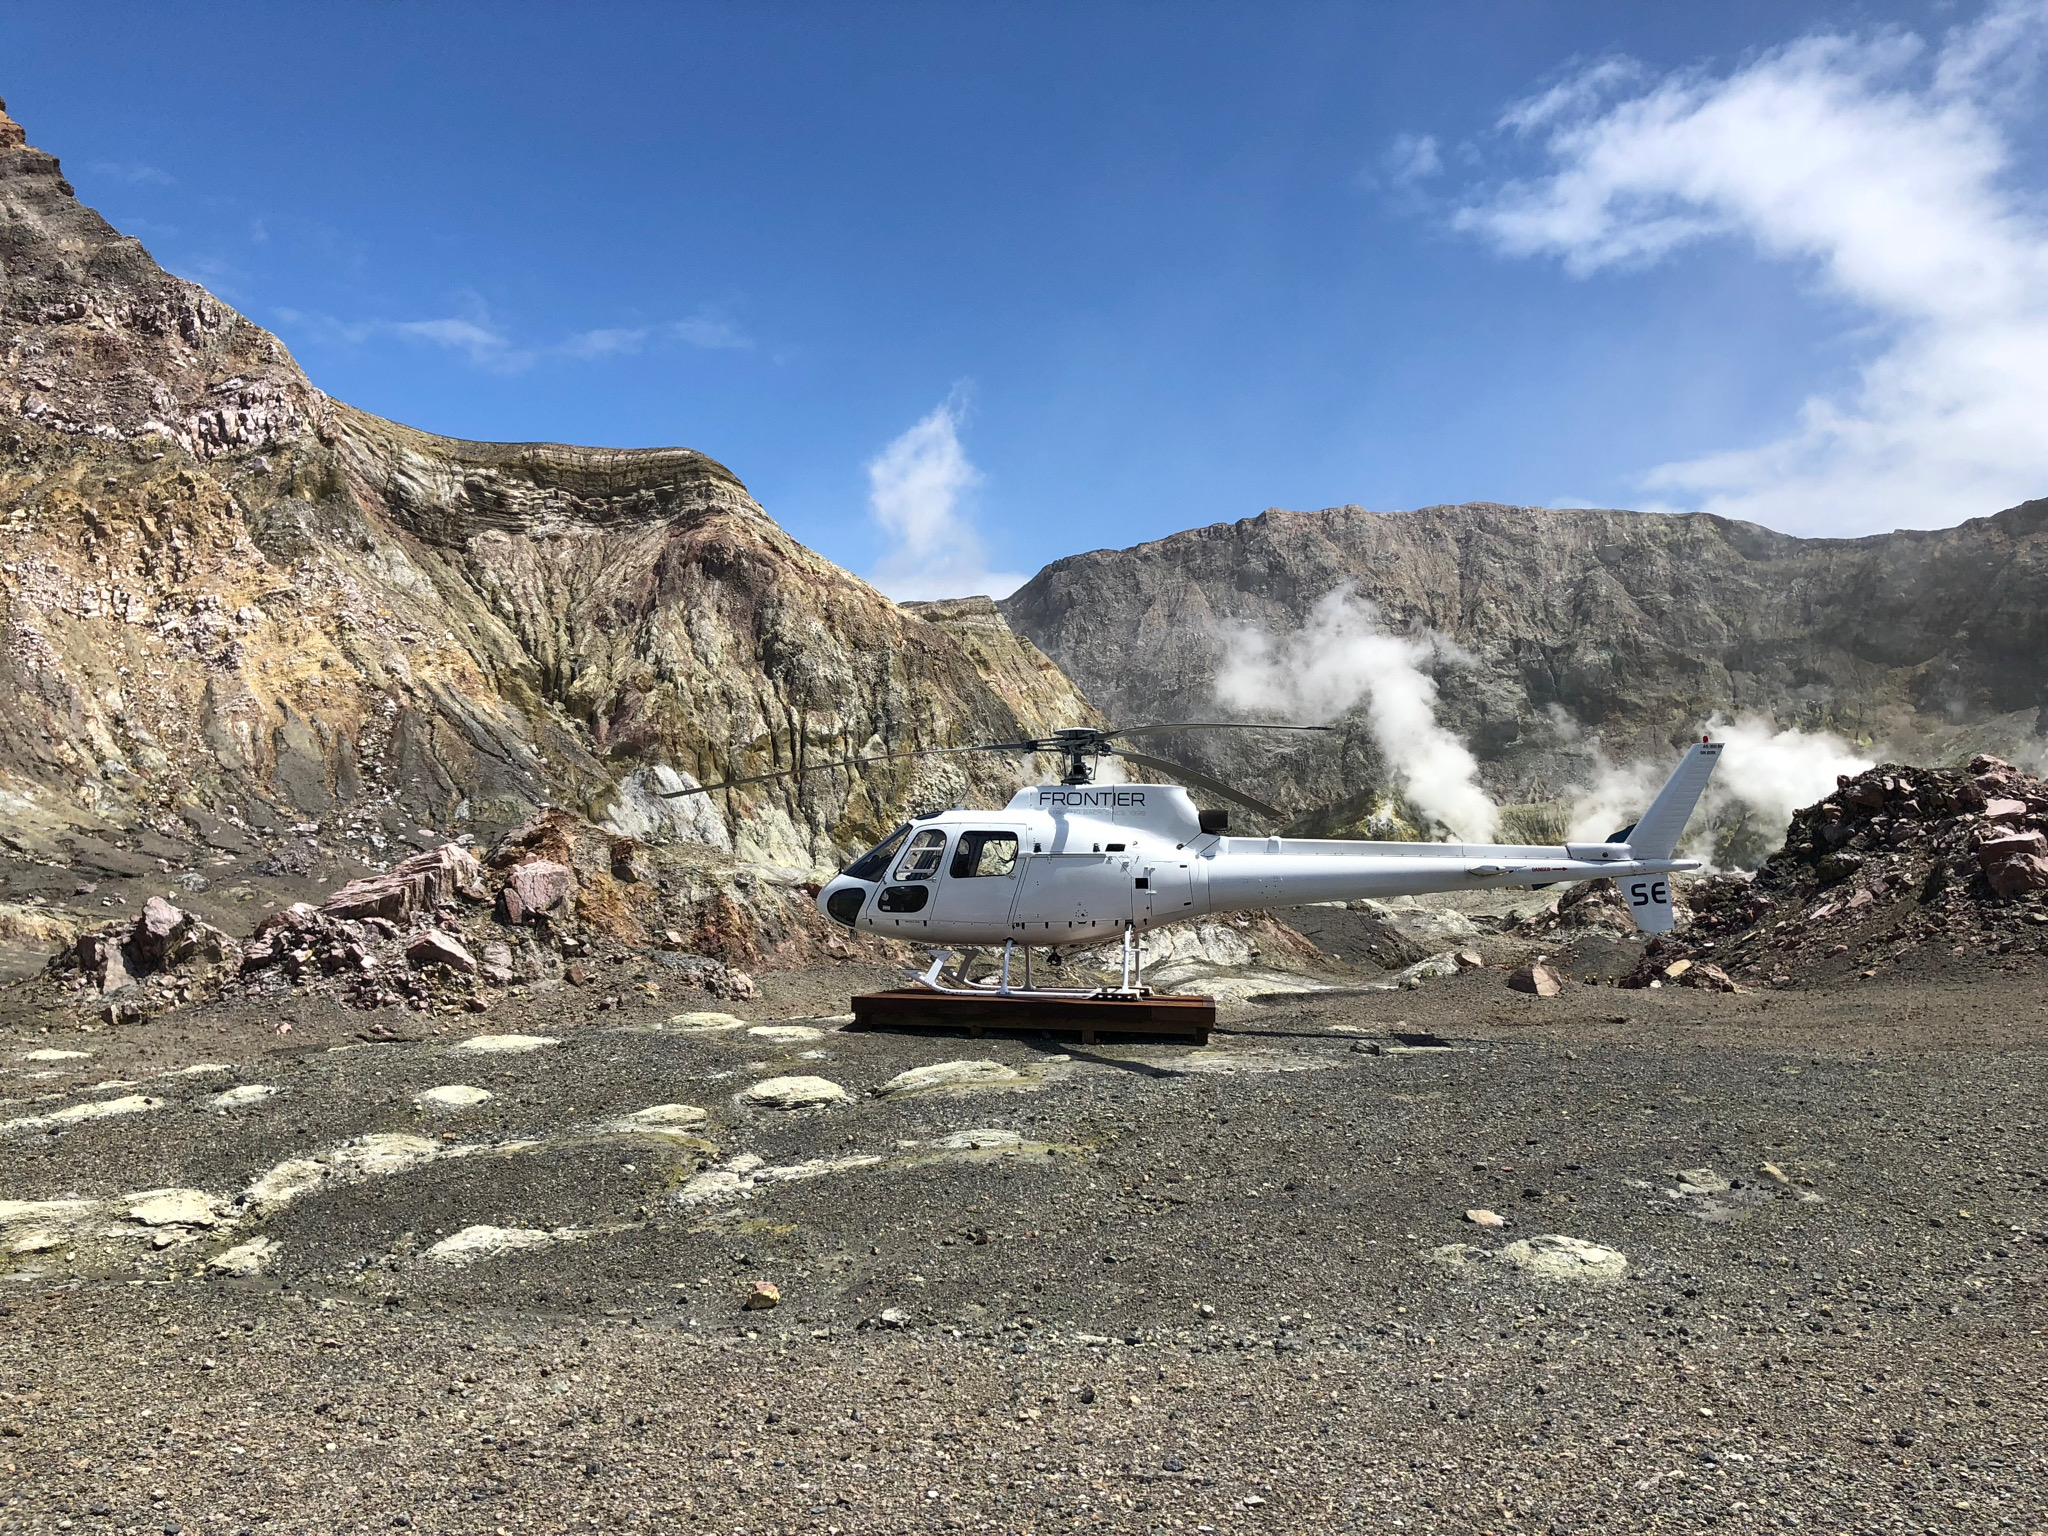 Landing upon a live volcano on their luxury New Zealand vacation! Location - White Island New Zealand